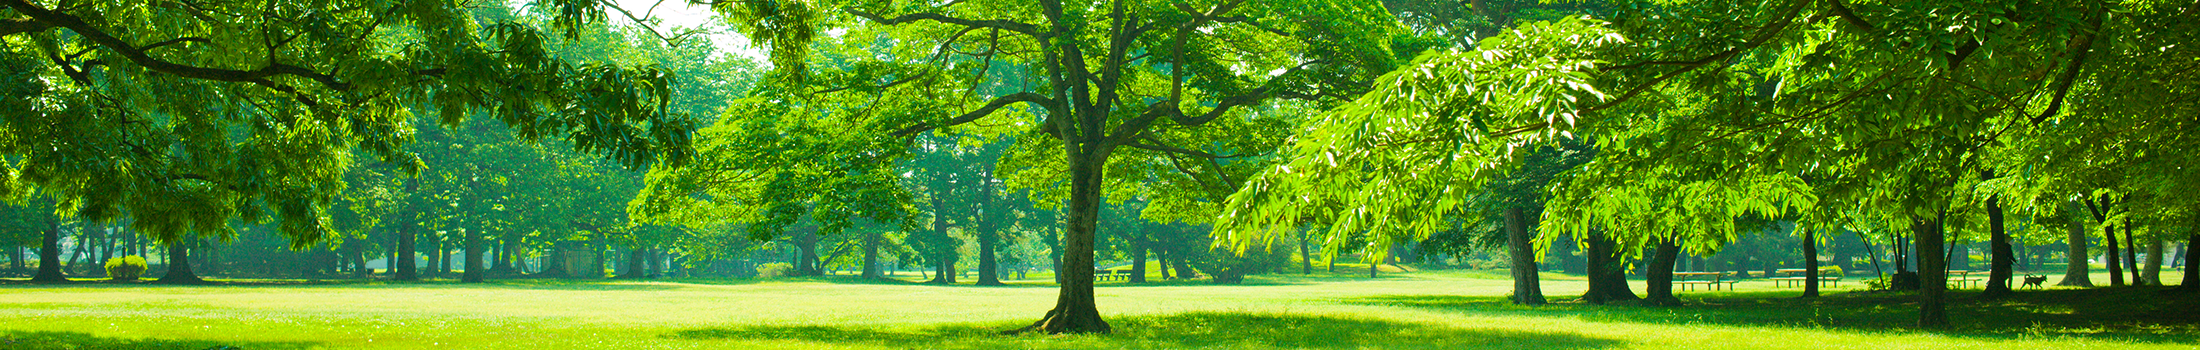 arbor tech tree care header image